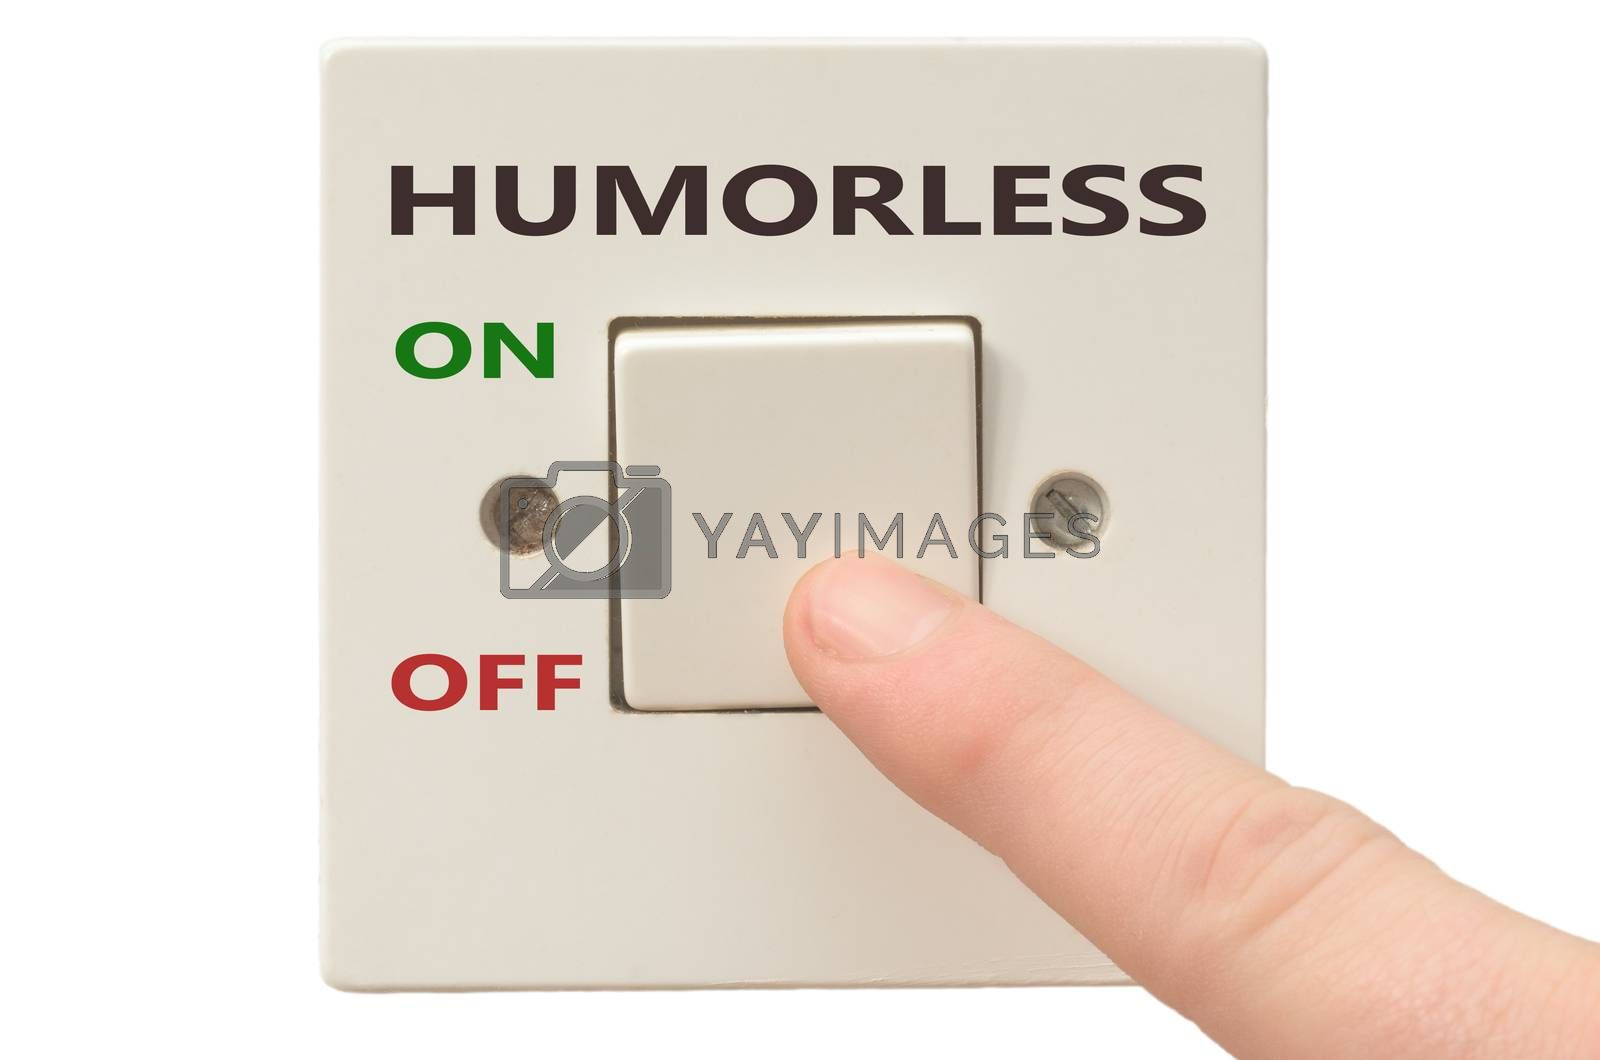 Turning off Humorless with finger on electrical switch